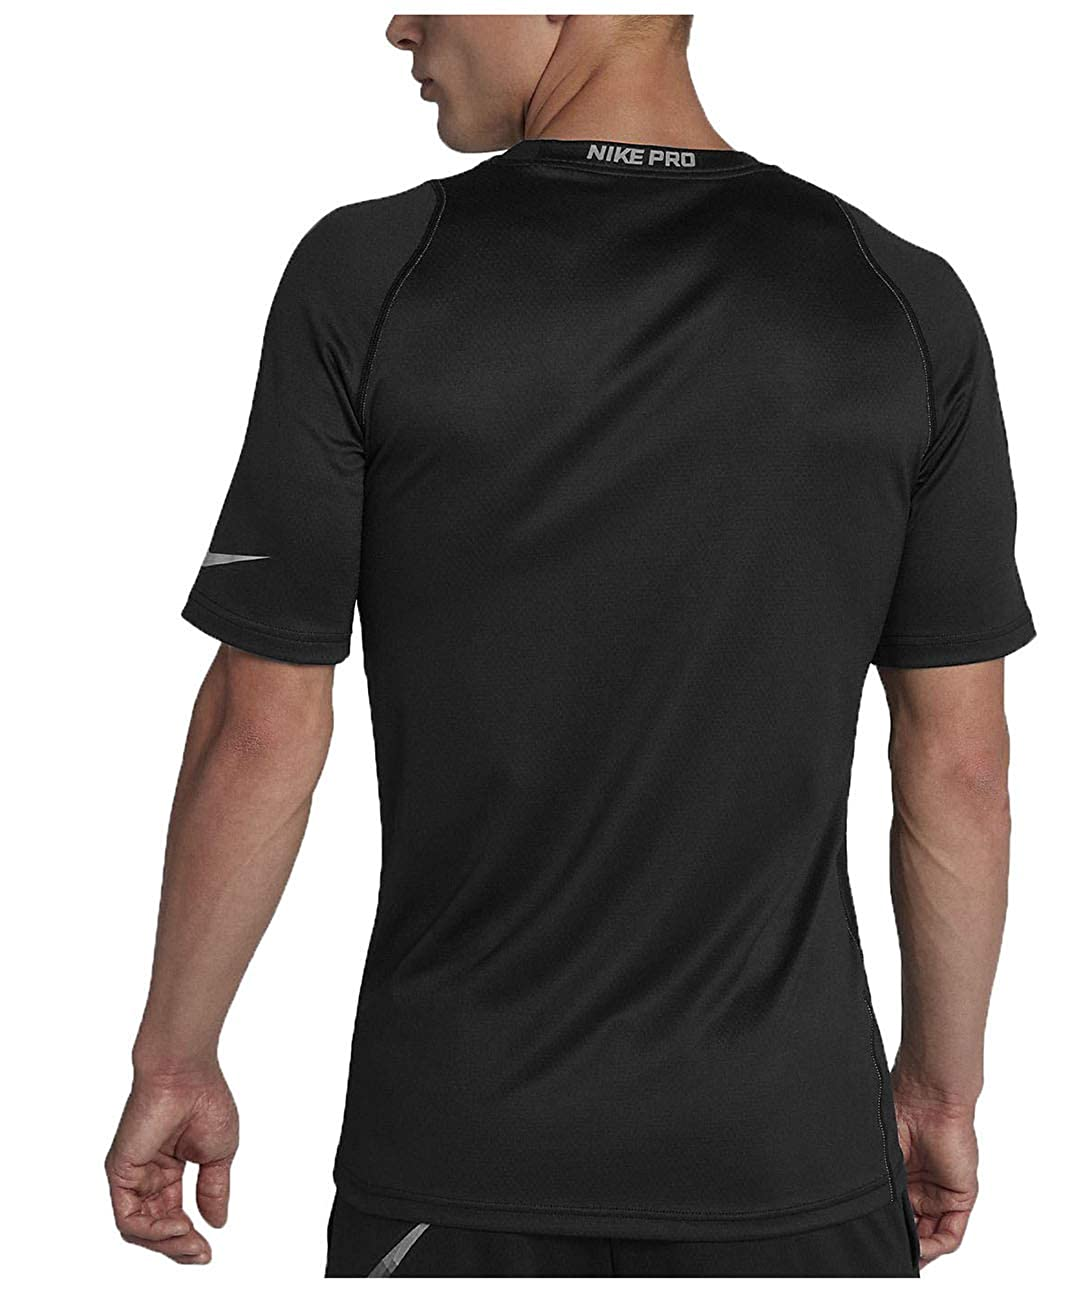 b8147b9a Amazon.com: NIKE Men's Pro Fitted Short Sleeve Shirt: Clothing